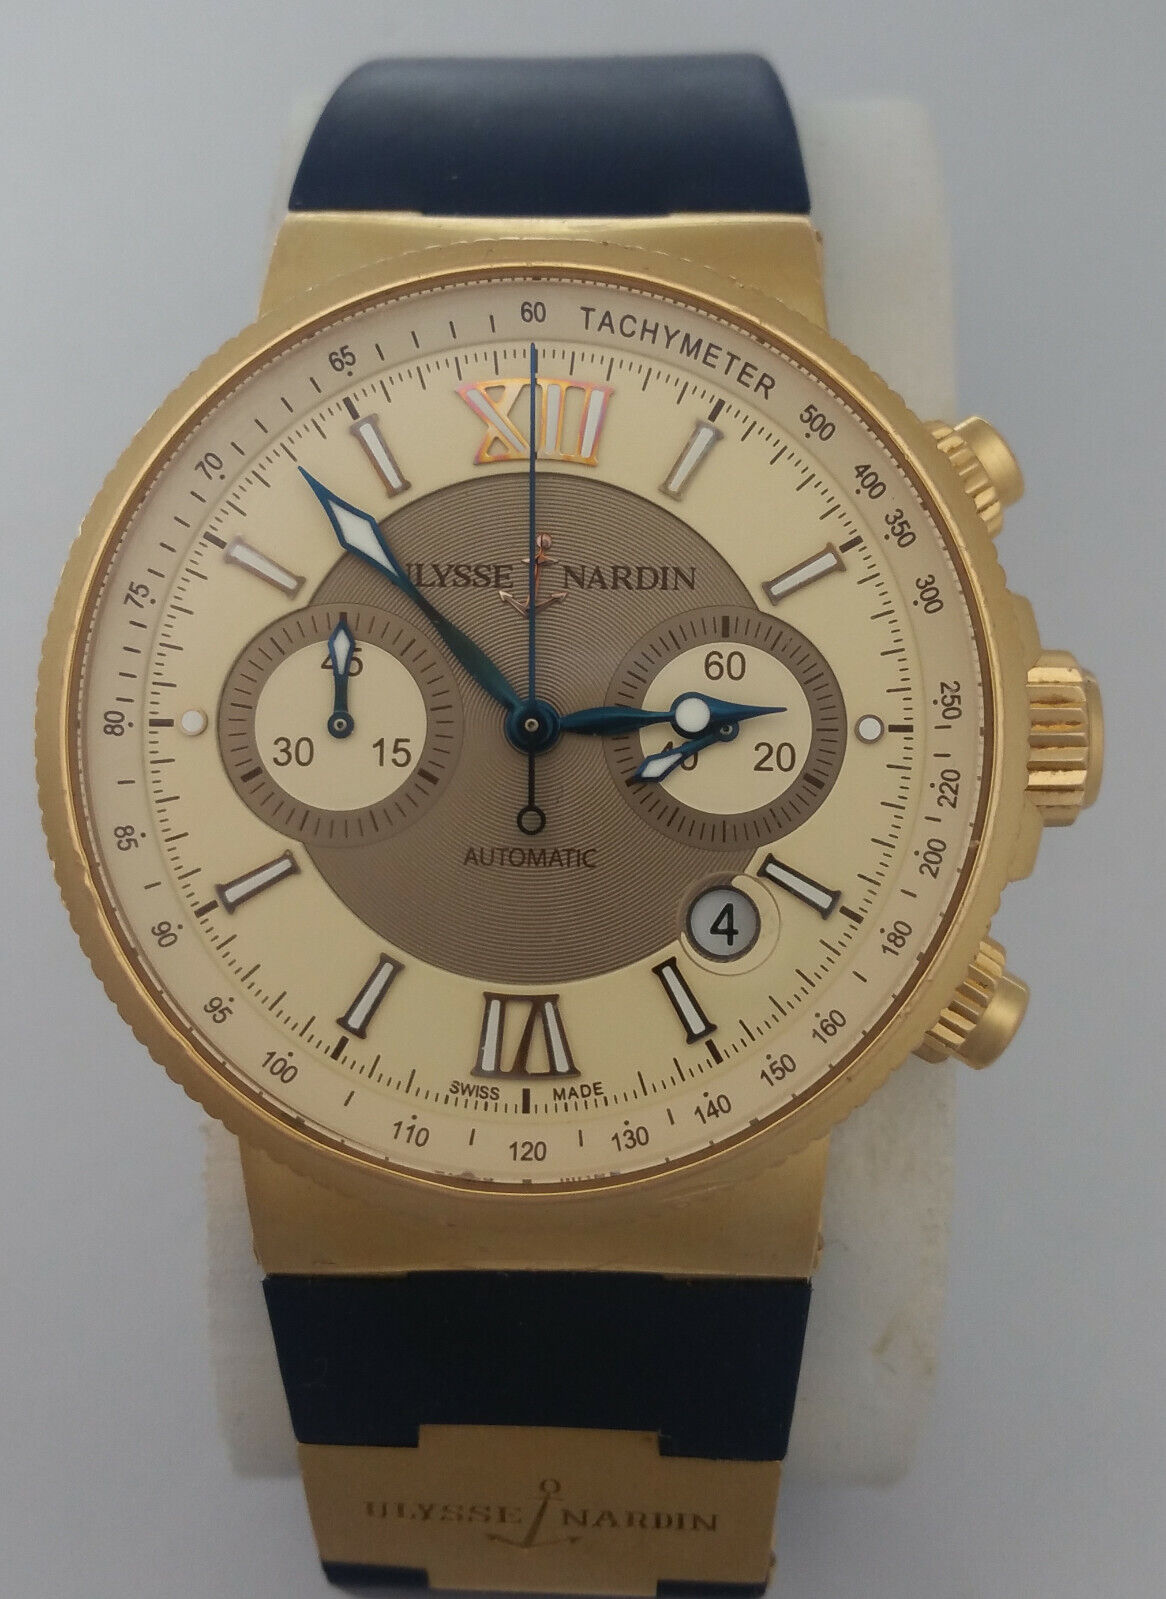 Giant Ulysse Nardin Marine 18k Rosy Gold Chronograph No. 877 356-66 Watch Box - watch picture 1